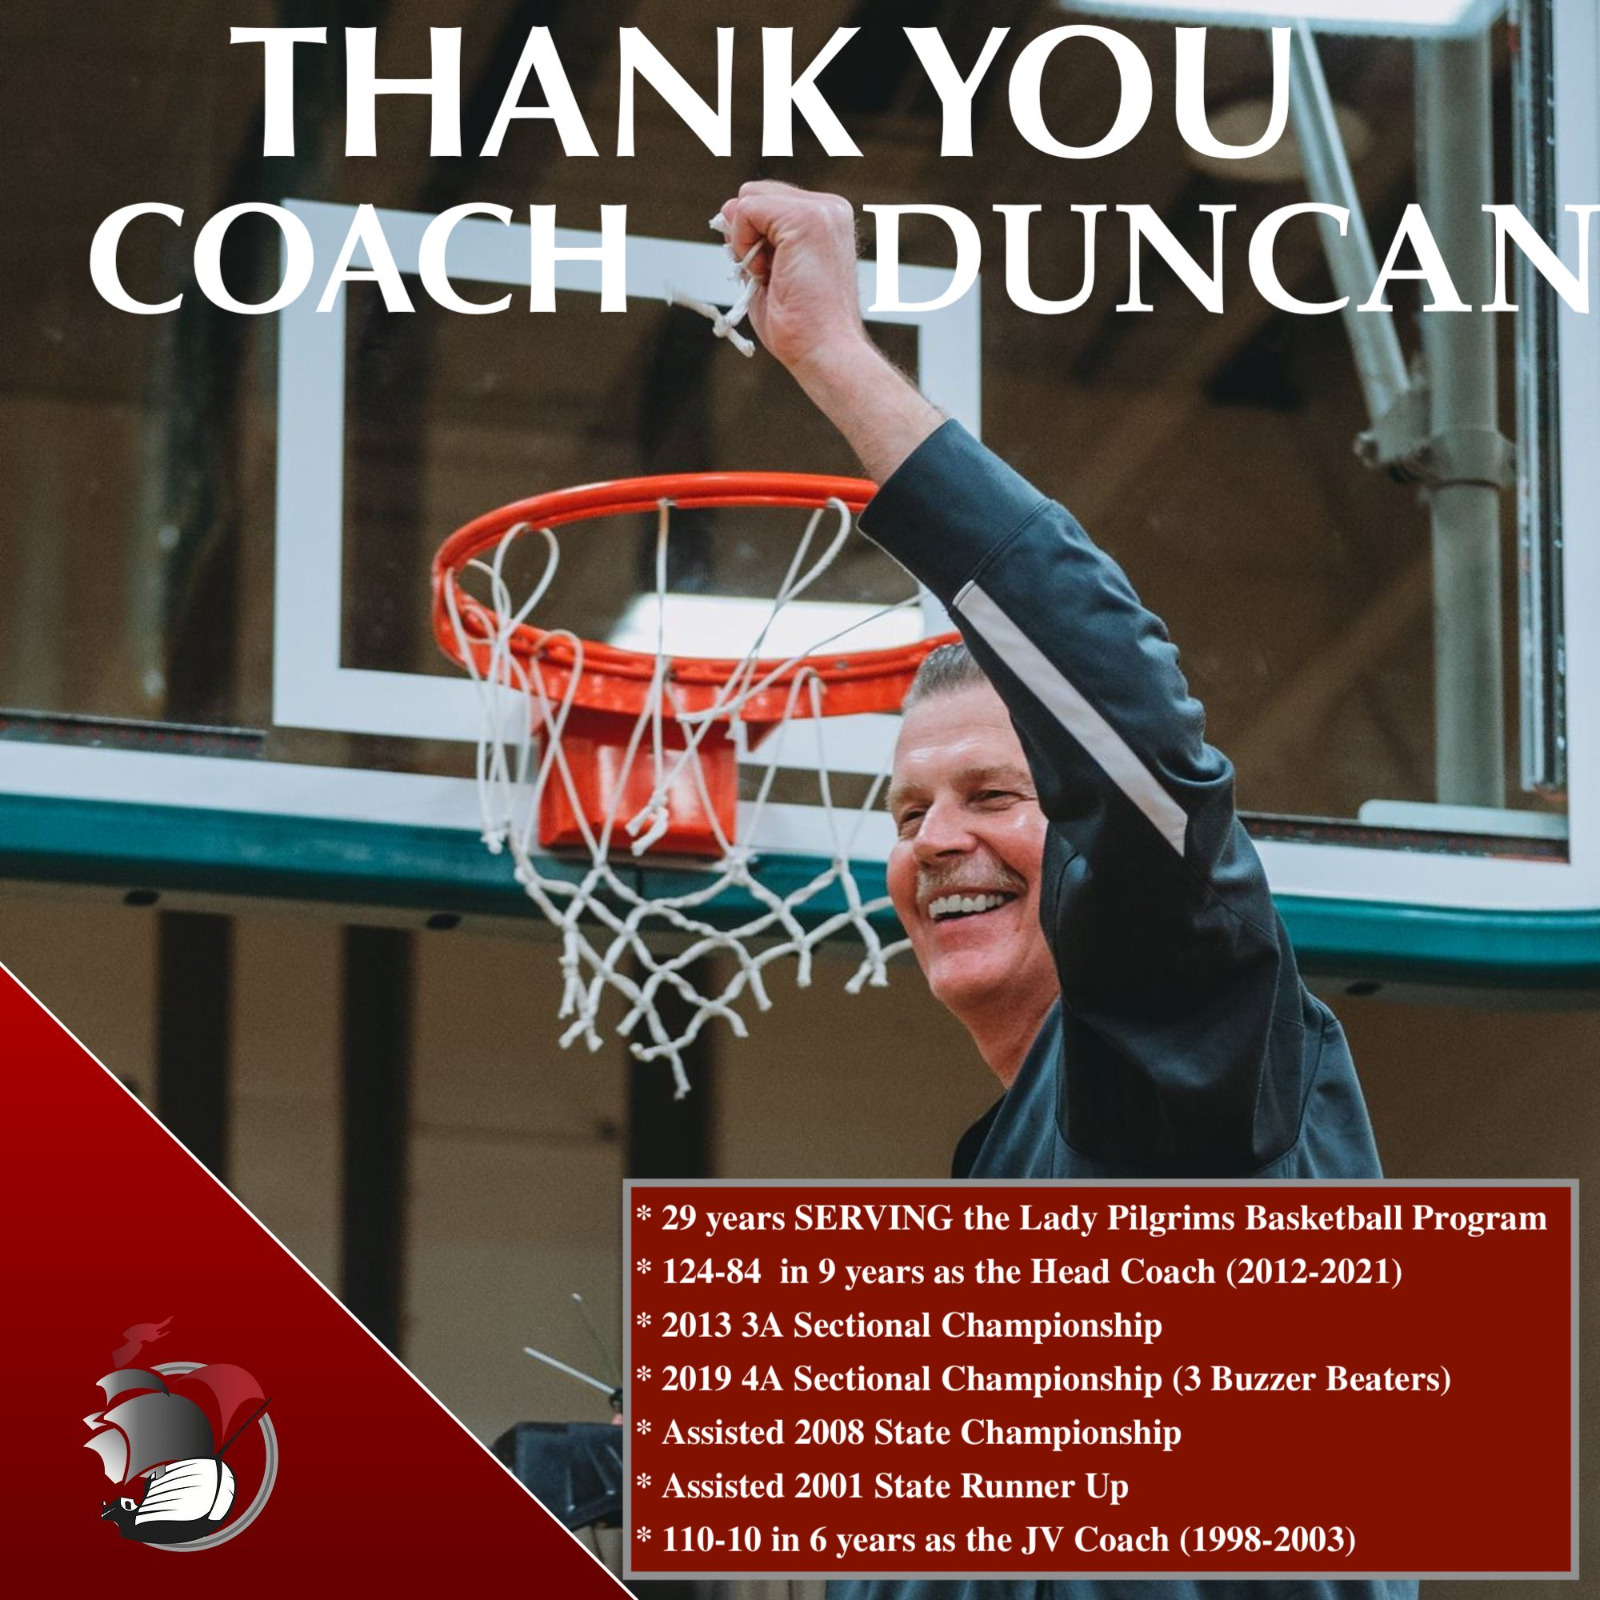 THANK YOU COACH DUNCAN – JOB WELL DONE!